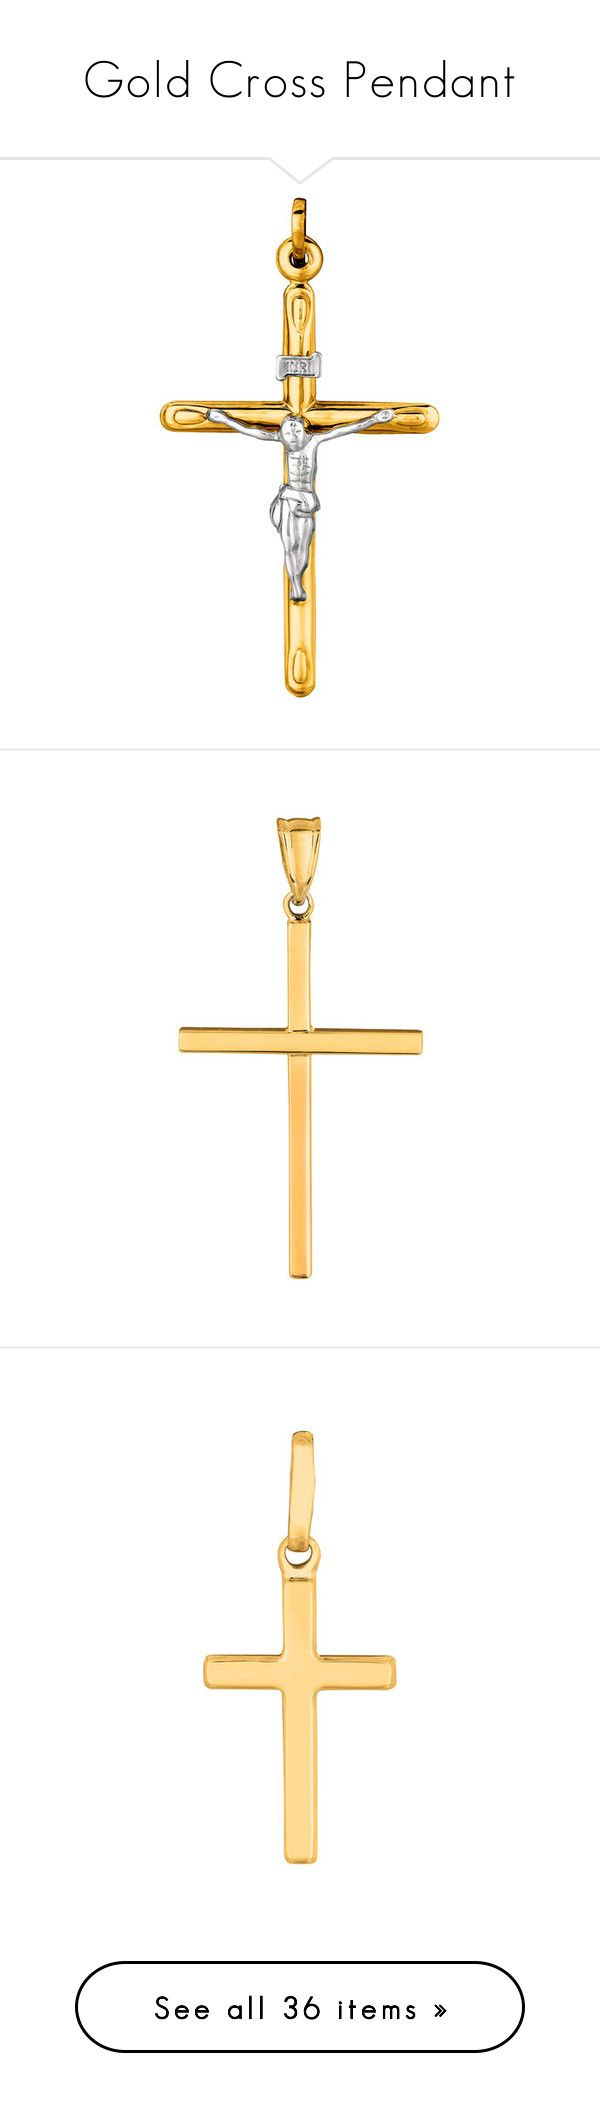 """""""Gold Cross Pendant"""" by jewelryaffairs ❤ liked on Polyvore featuring cross, crosspendant, goldcross, jewelry, round gold pendant, 14 karat gold pendants, 14k jewelry, yellow gold jewelry, gold pendant jewelry and pendants"""